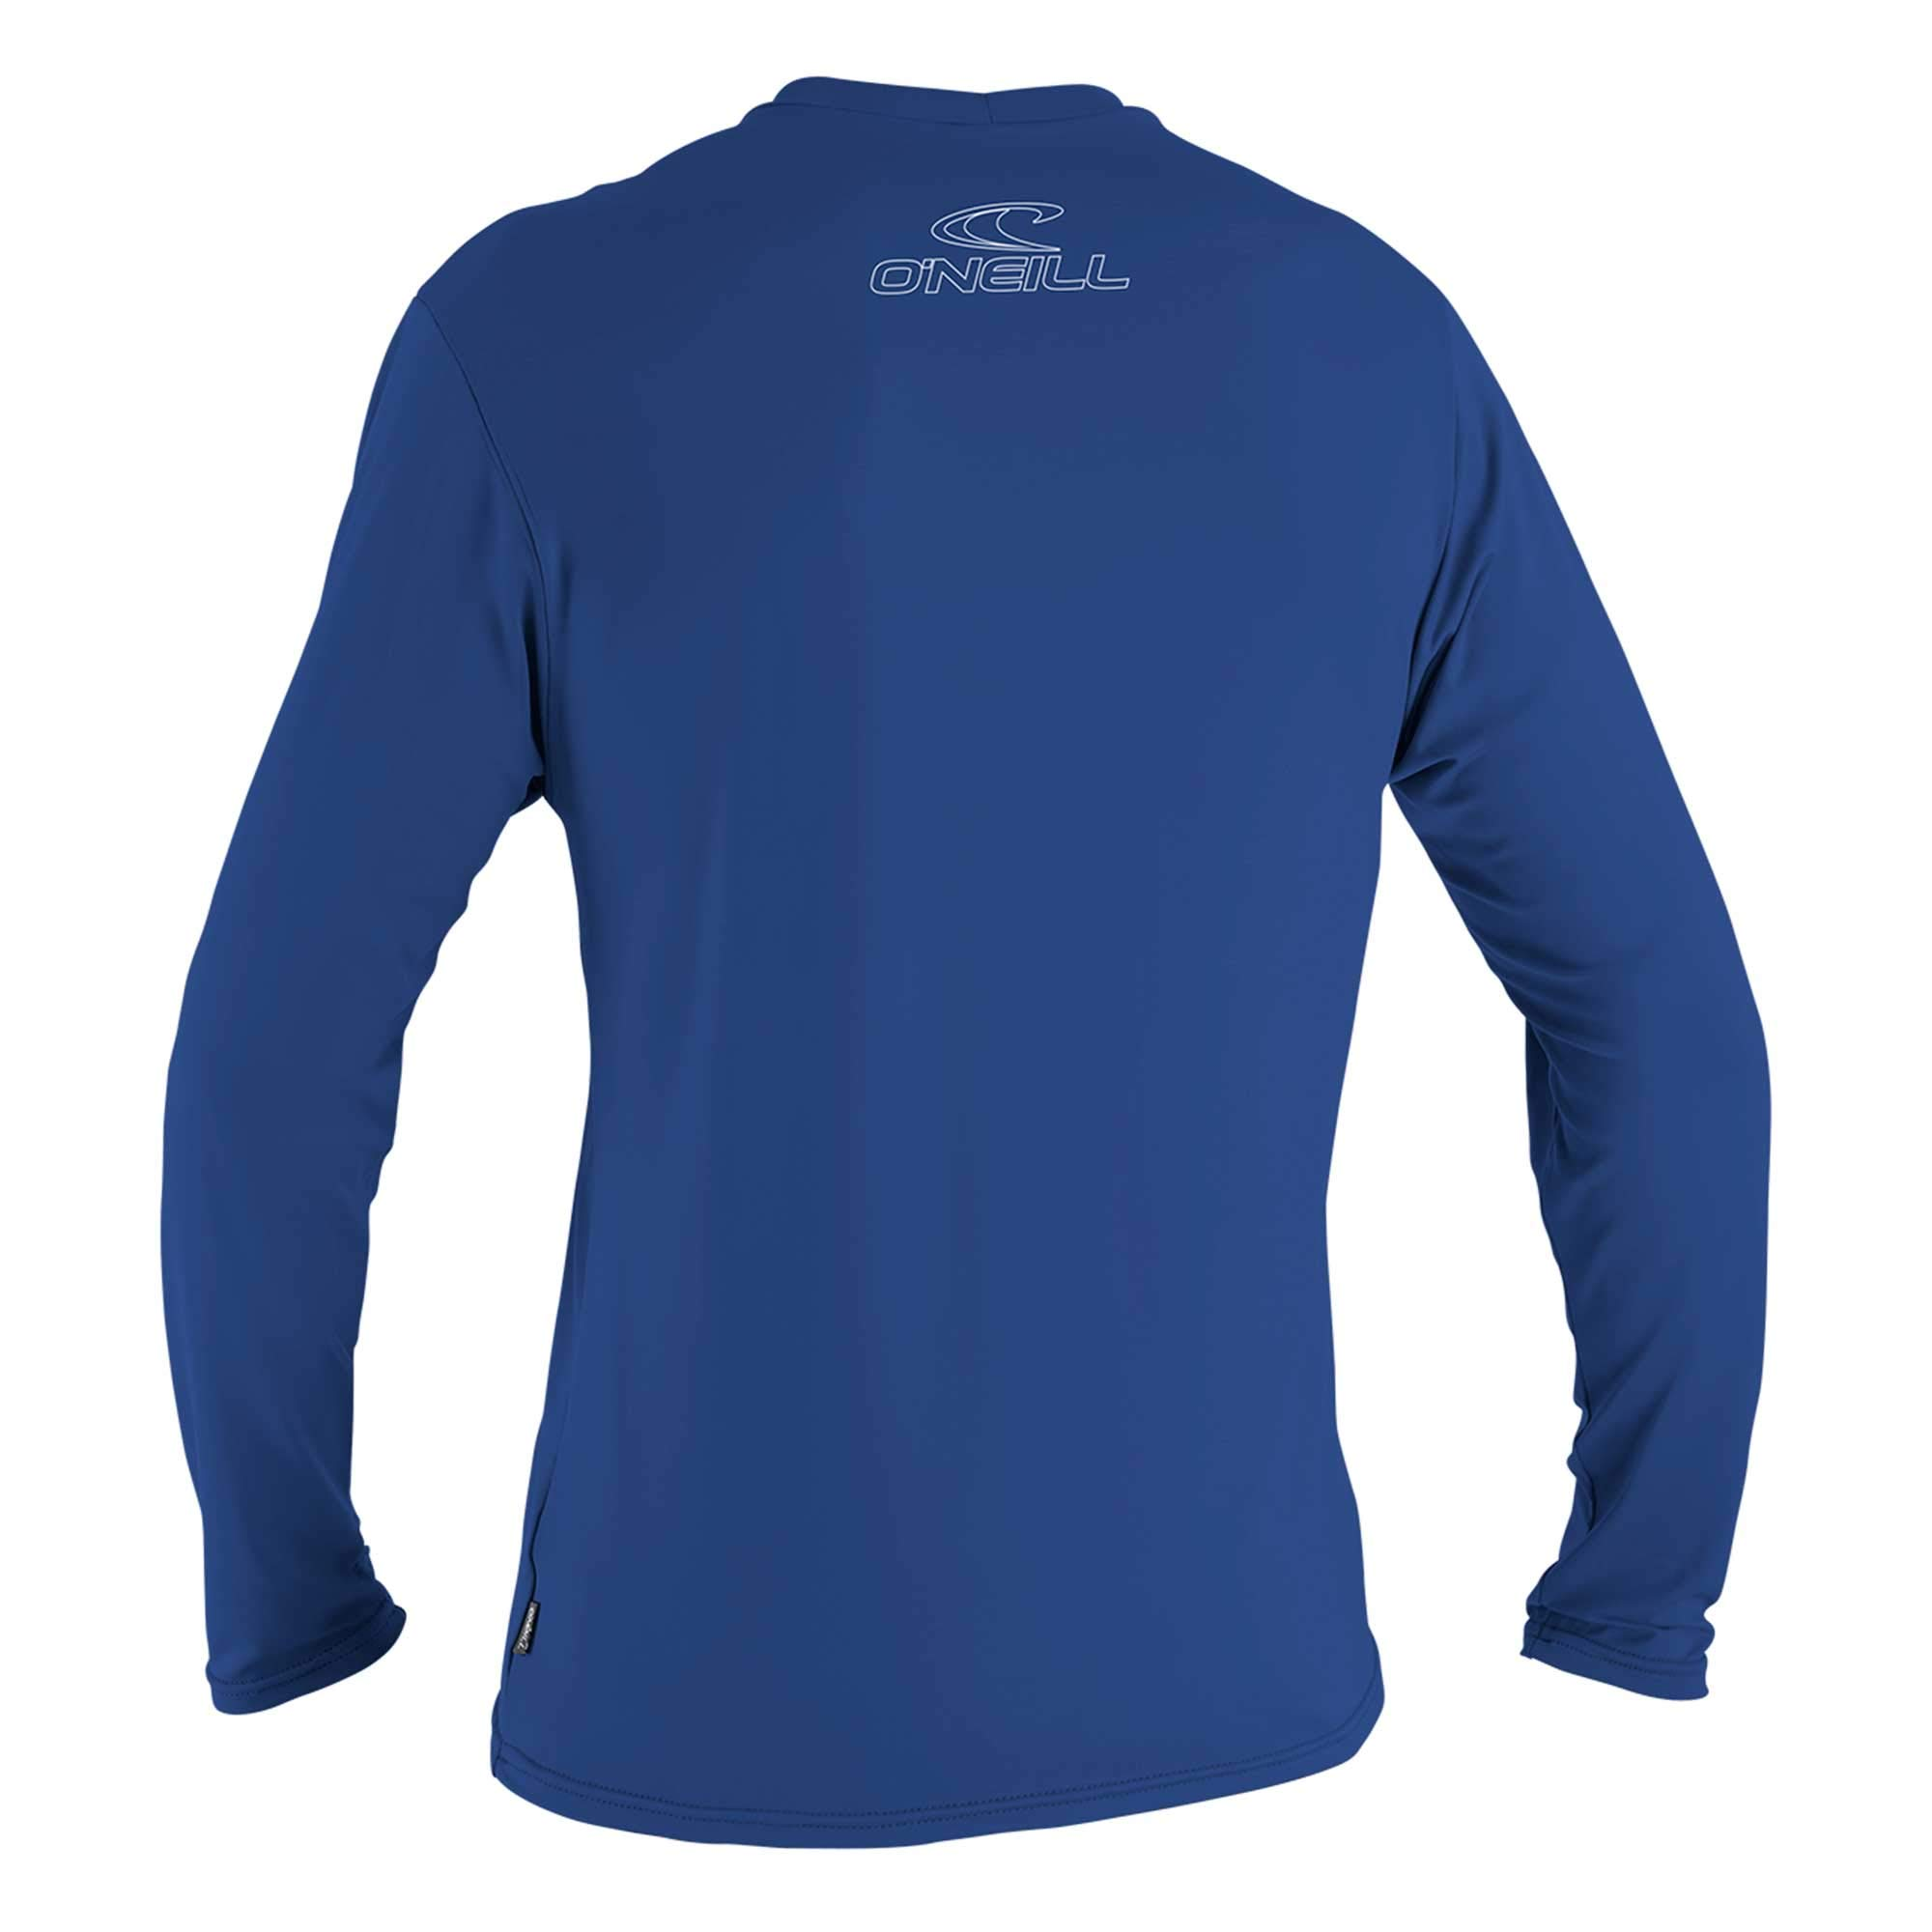 O'Neill Wetsuits Wetsuits UV Sun Protection Mens Basic Skins Long Sleeve Tee Sun Shirt Rash Guard, Pacific, Small by O'Neill Wetsuits (Image #3)